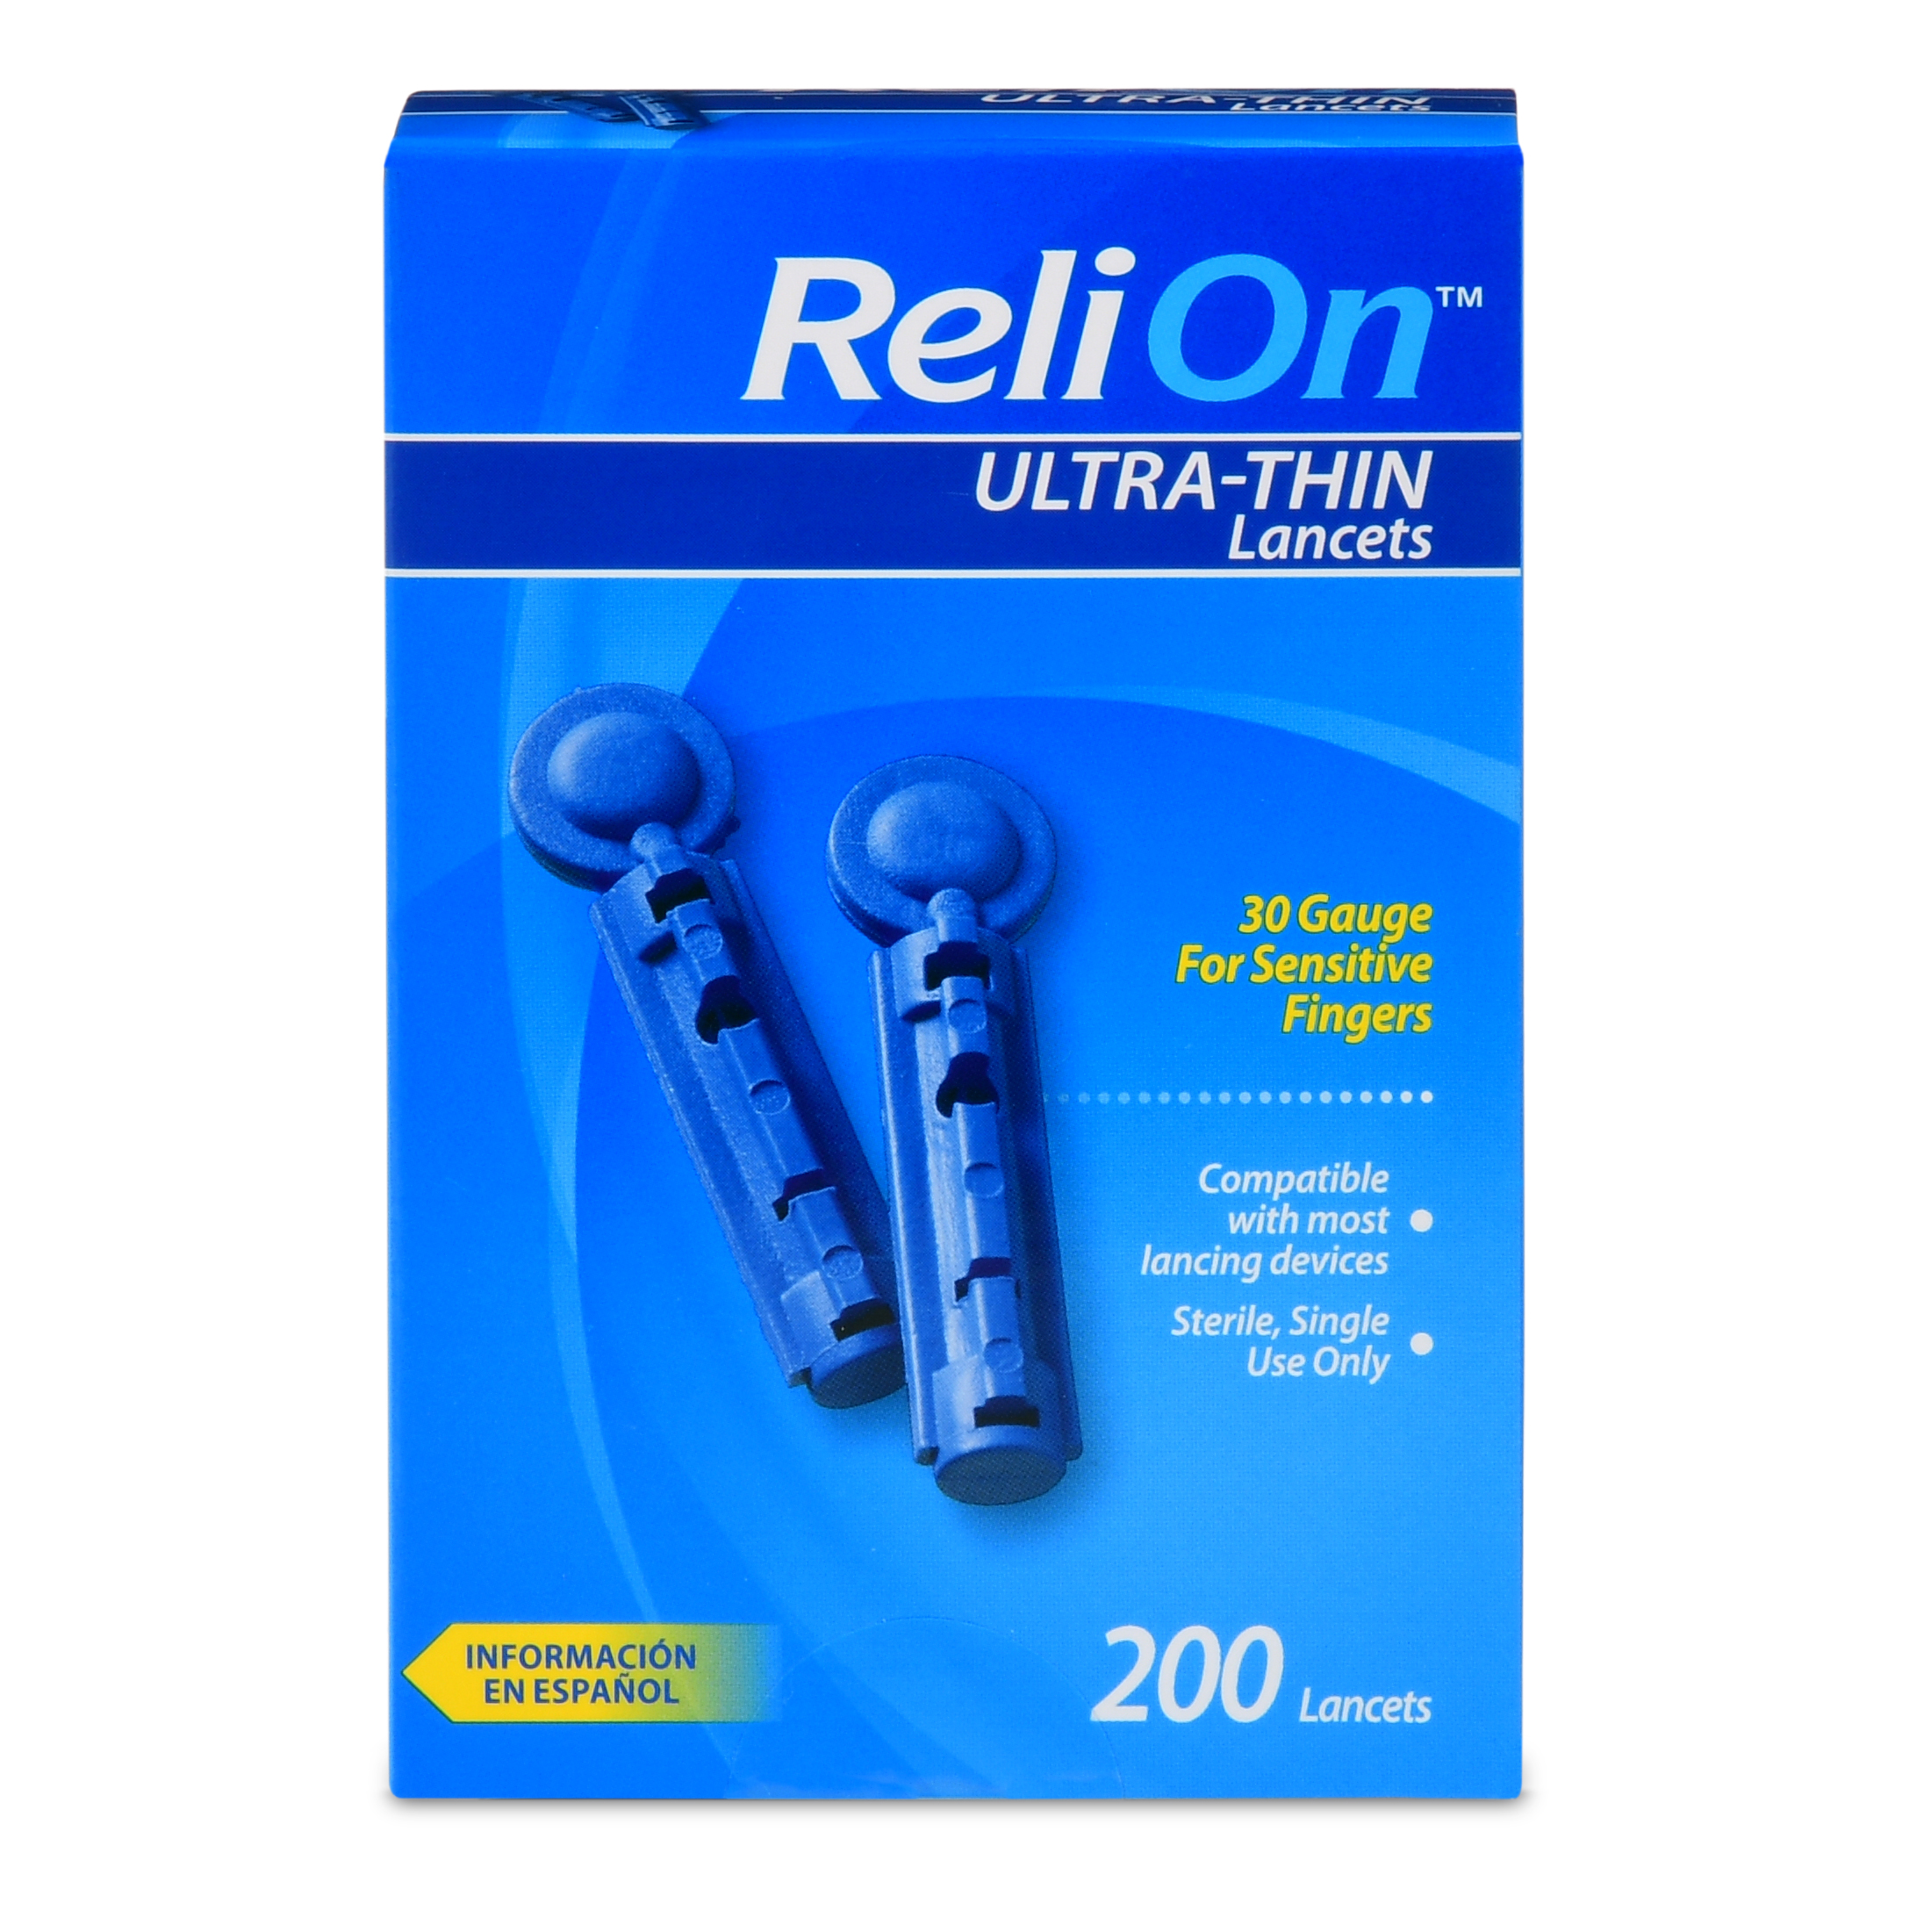 ReliOn 30 Gauge Ultra-Thin Lancets, 200 Ct